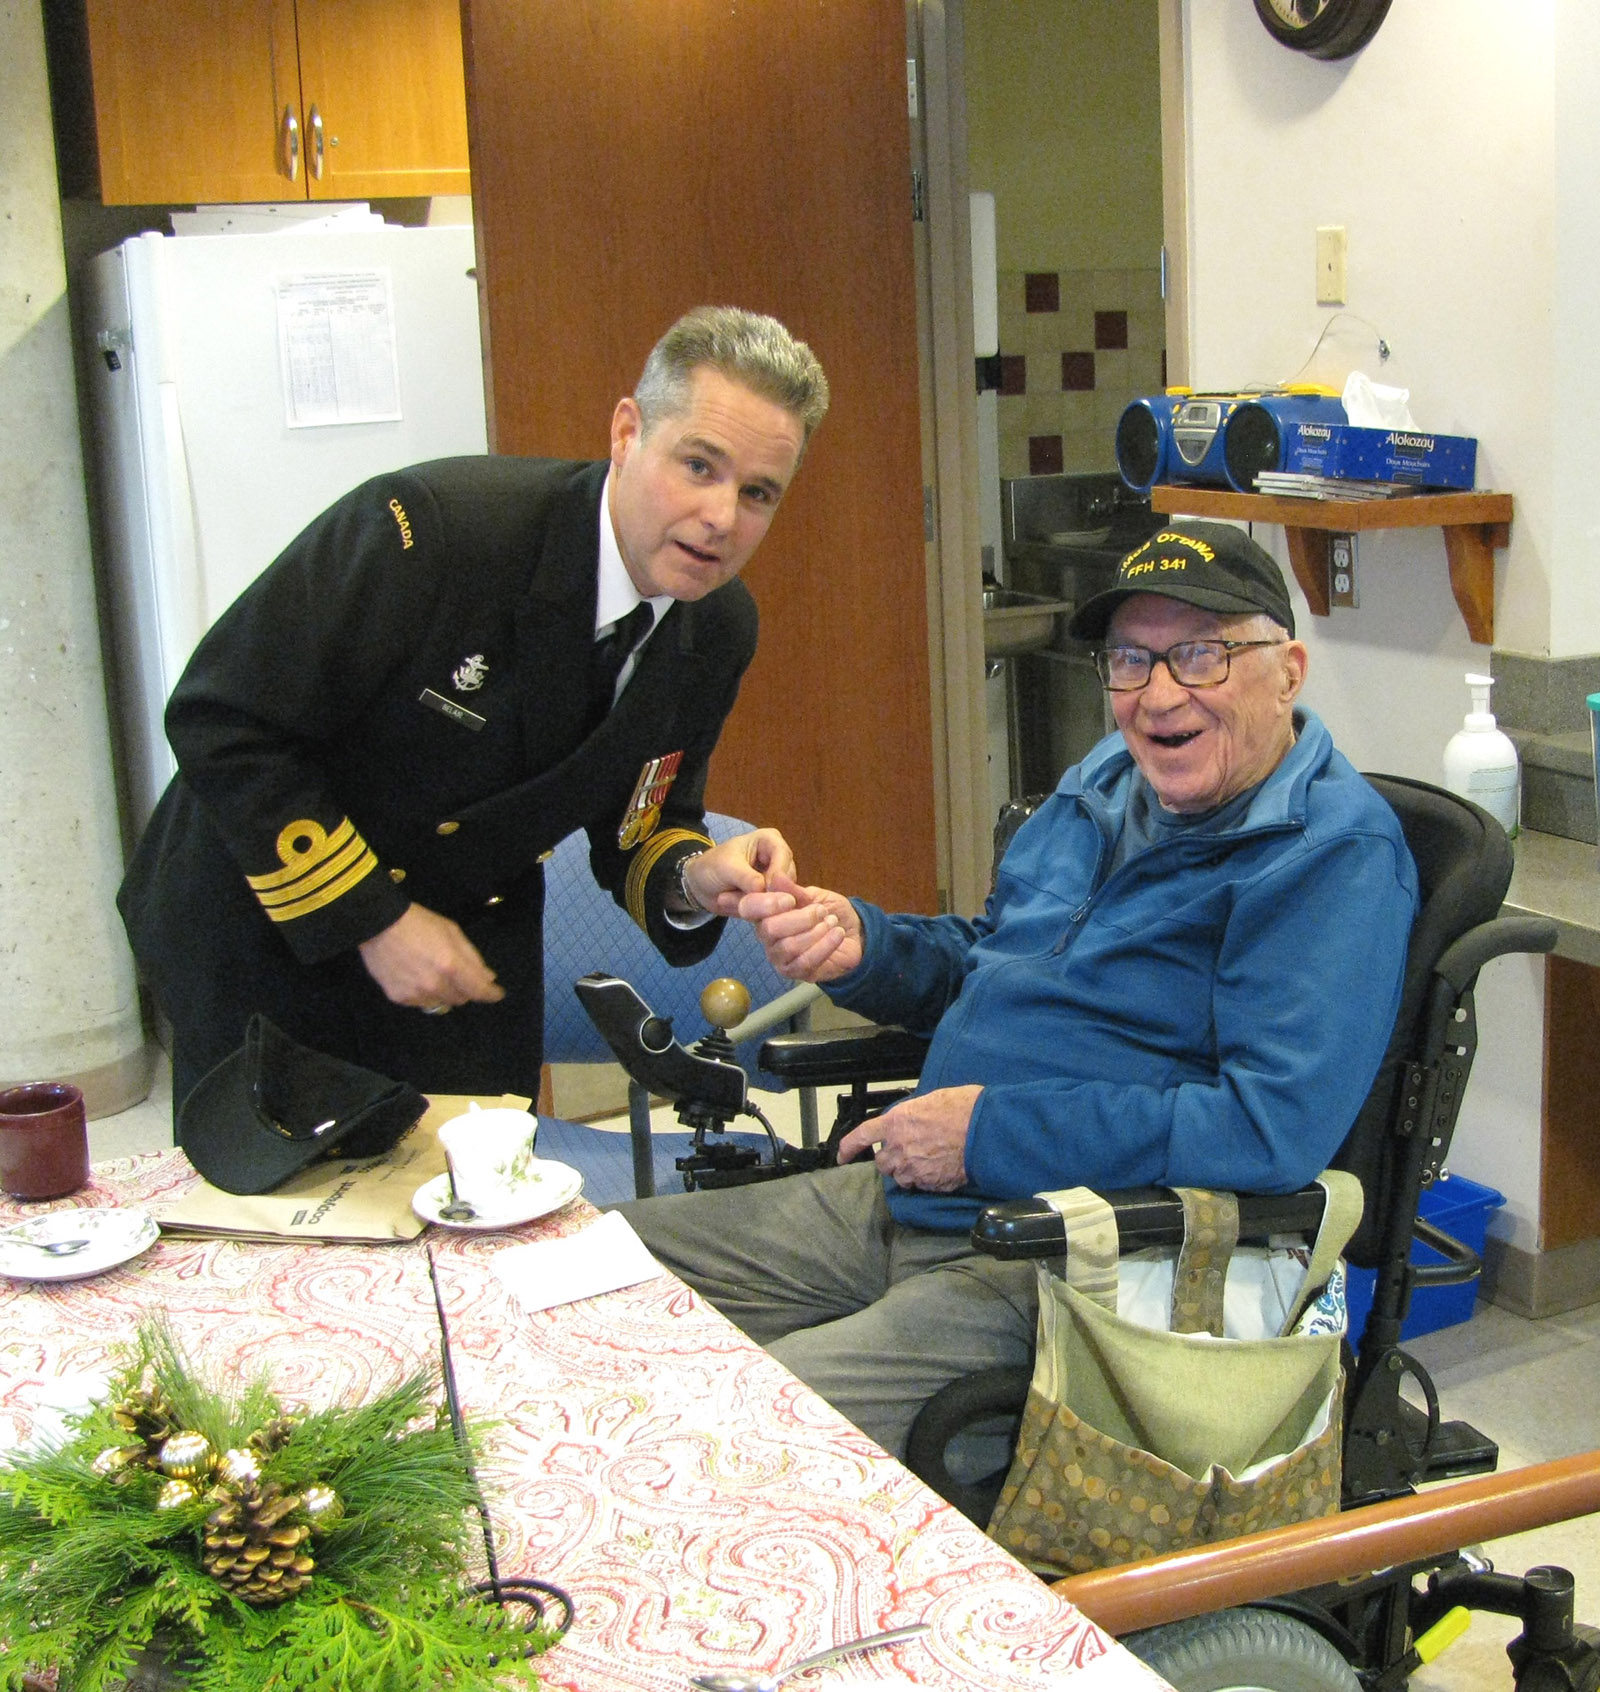 Commander Sylvain Belair, Commanding Officer of HMCS Ottawa, spends time with a resident at the Perley and Rideau Veterans' Health Centre.